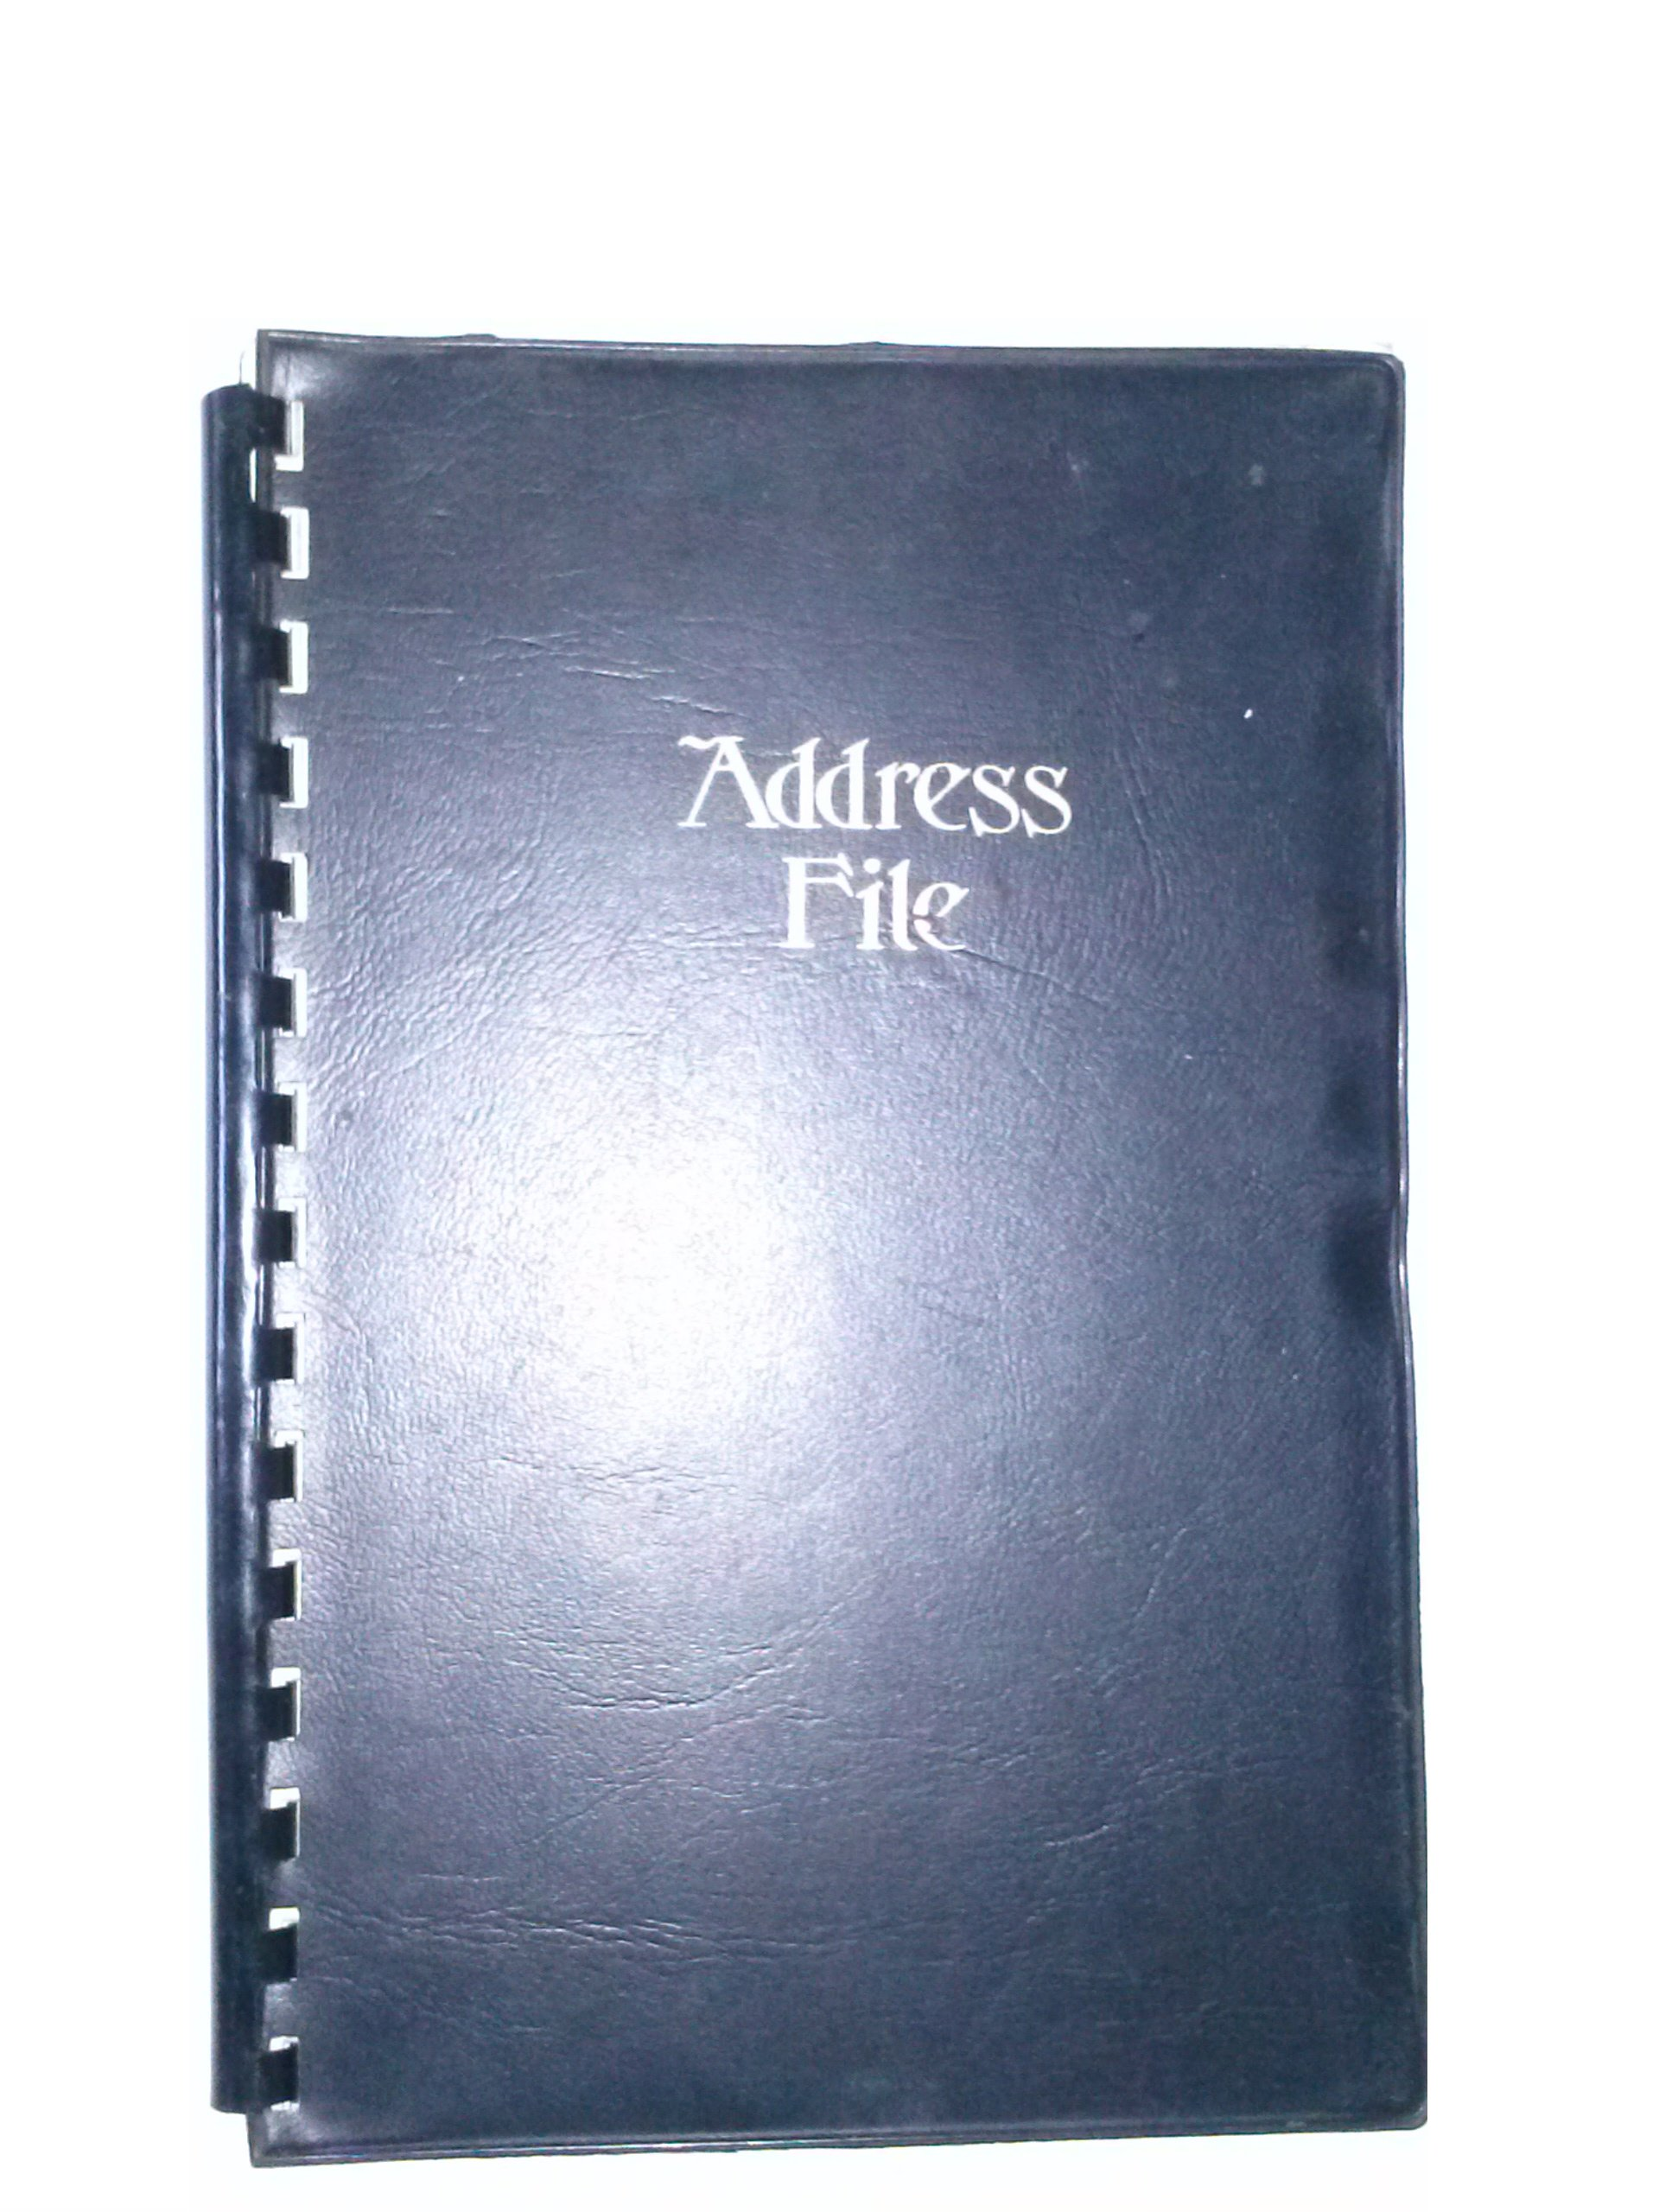 Samsill 81069 Address File 5'' x 7 3/4'' Black Cover by Samsill (Image #1)